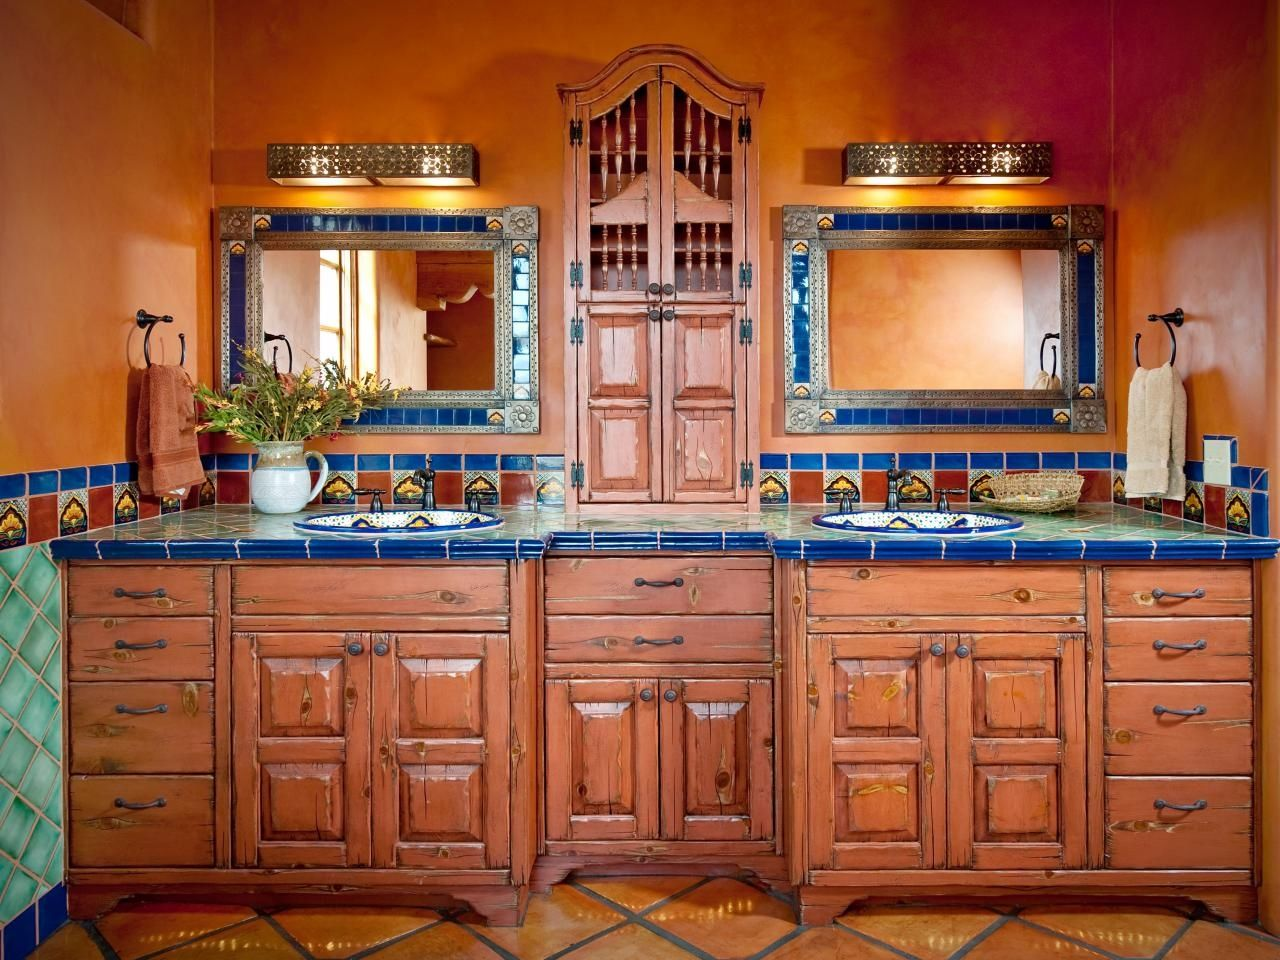 Mexican kitchen decor - 44 Top Talavera Tile Design Ideas Toilets Countertop And Results 1 Bedroom Apartment Decorating